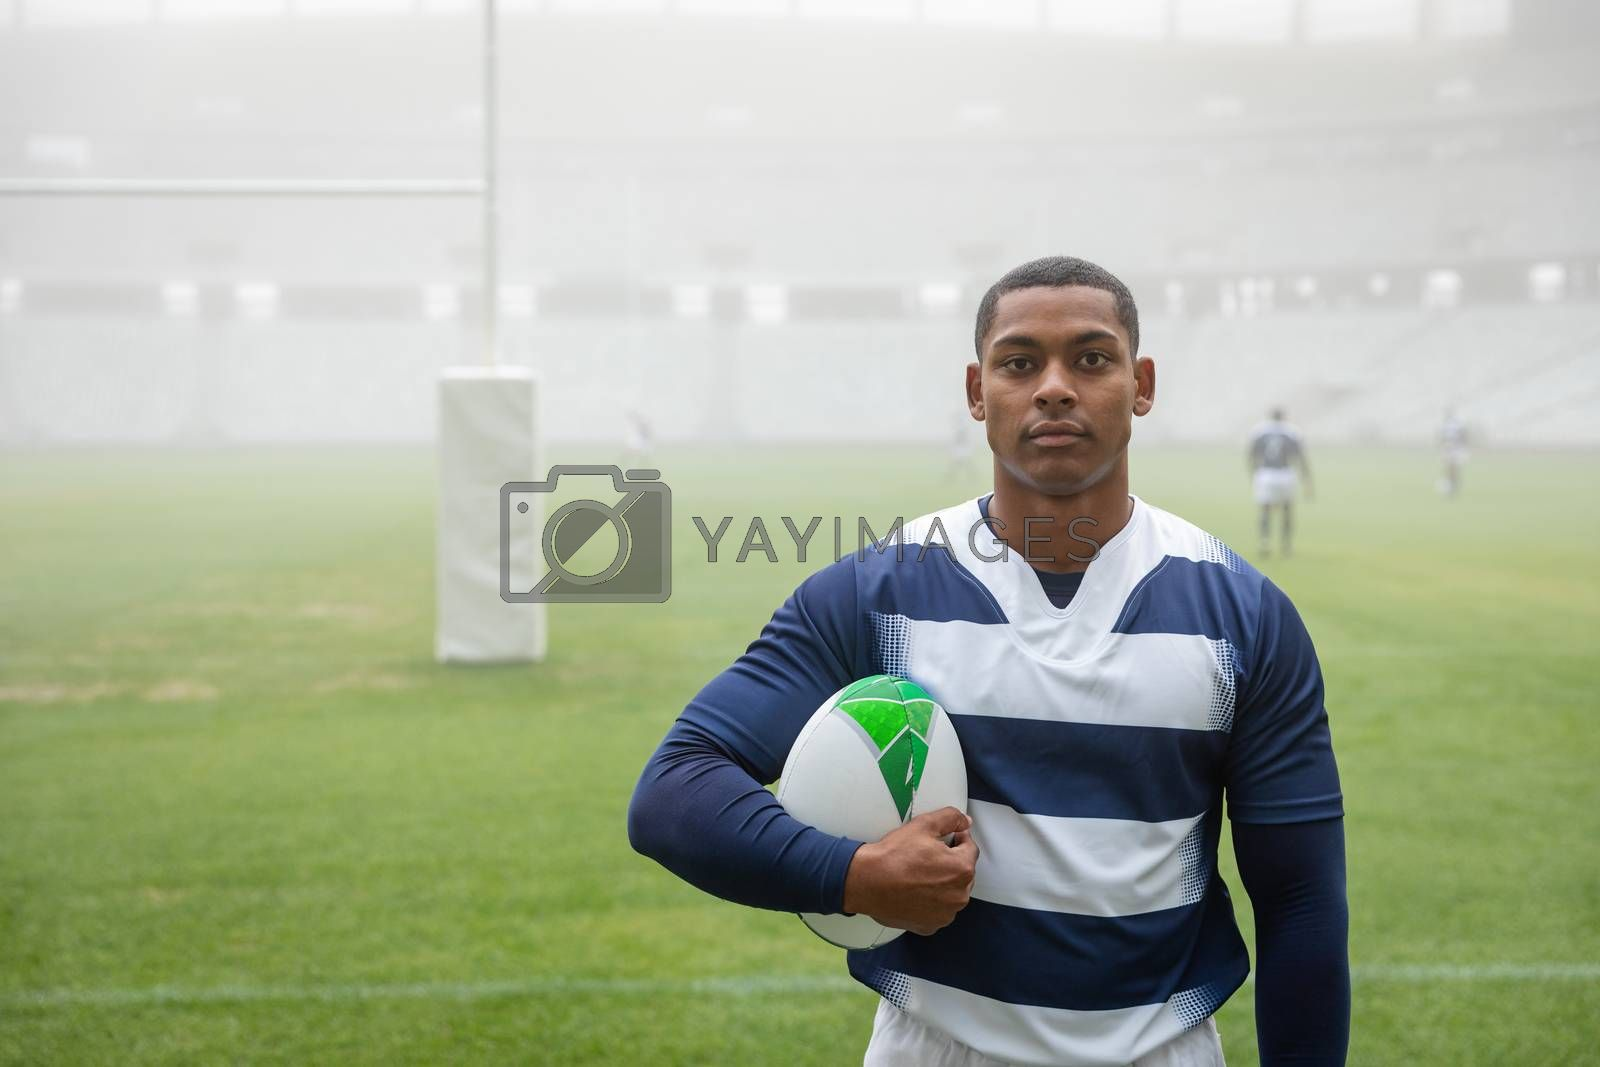 Portrait of African american male rugby player holding a rugby ball in stadium. With players in the background.